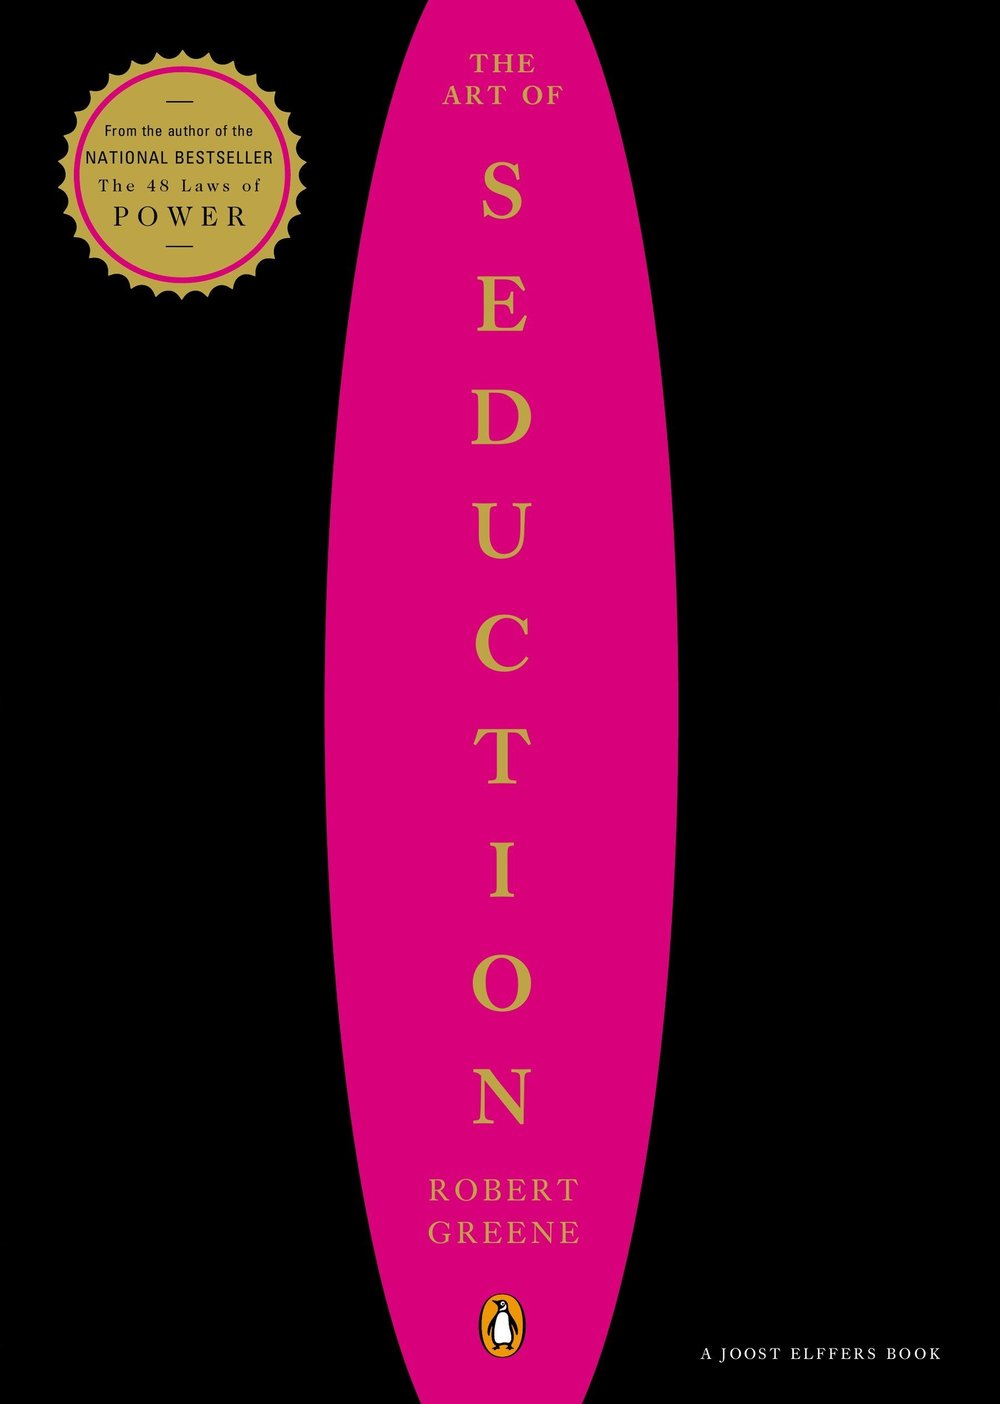 the-art-of-seduction-robert-greene-book-cover.jpg